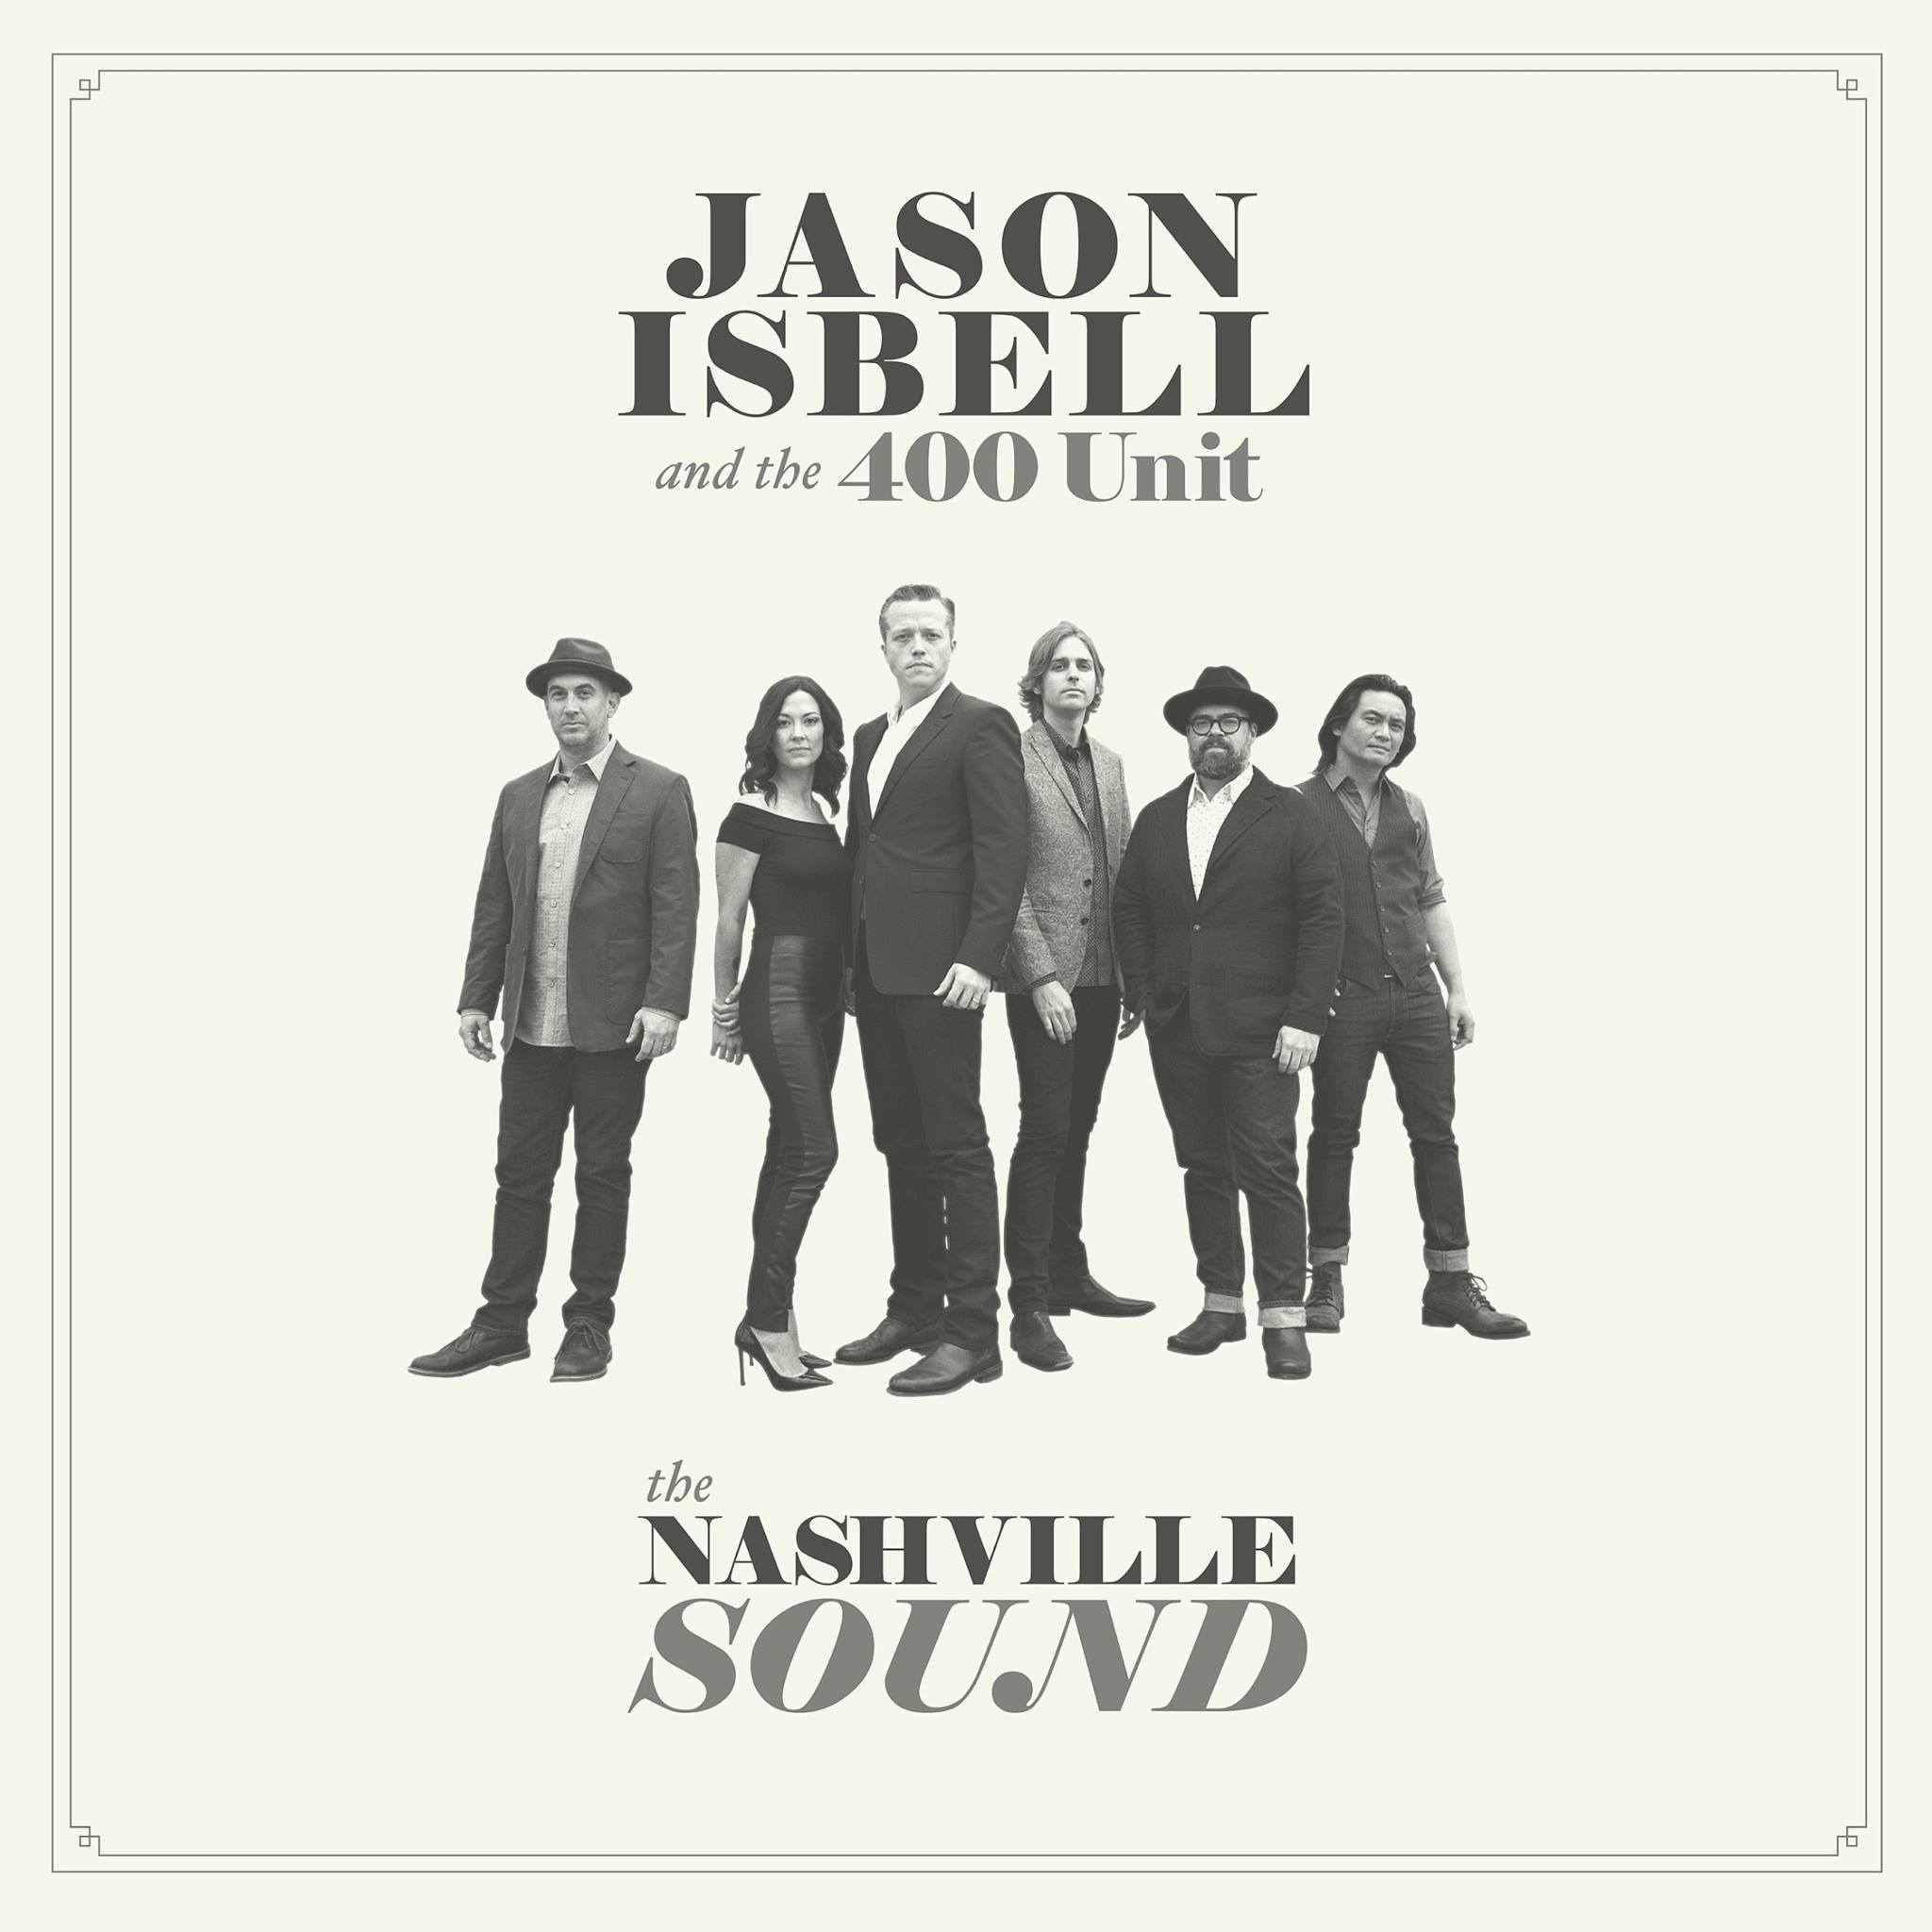 jason isbell Jason Isbell takes our country to task on new song White Mans World    listen